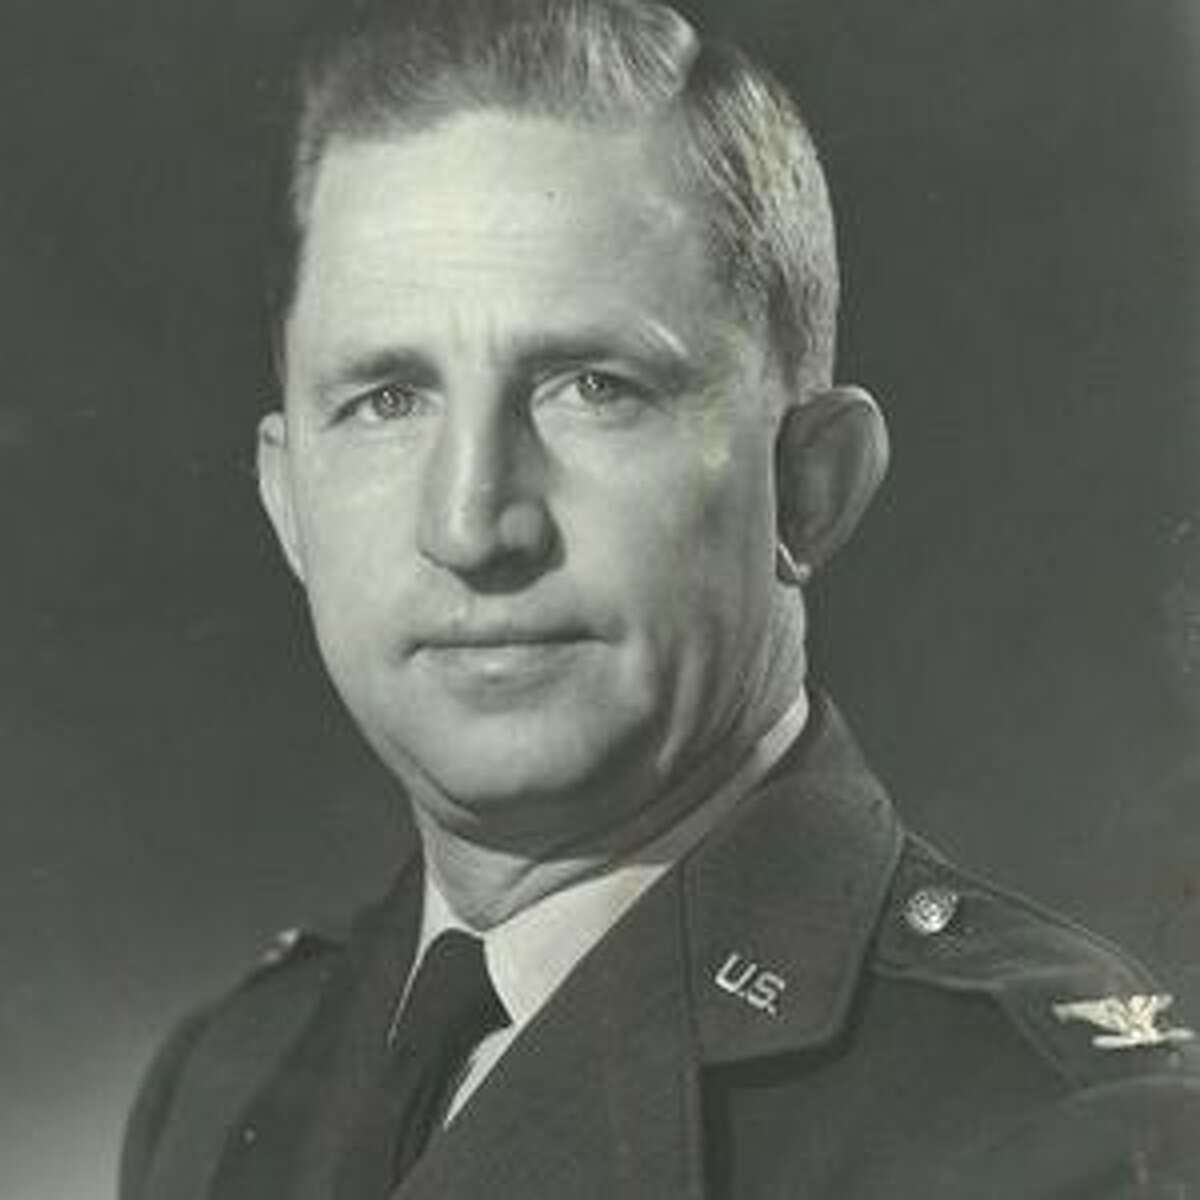 Retired Air Force Col. Ben Settles died Feb. 3. He was 97.